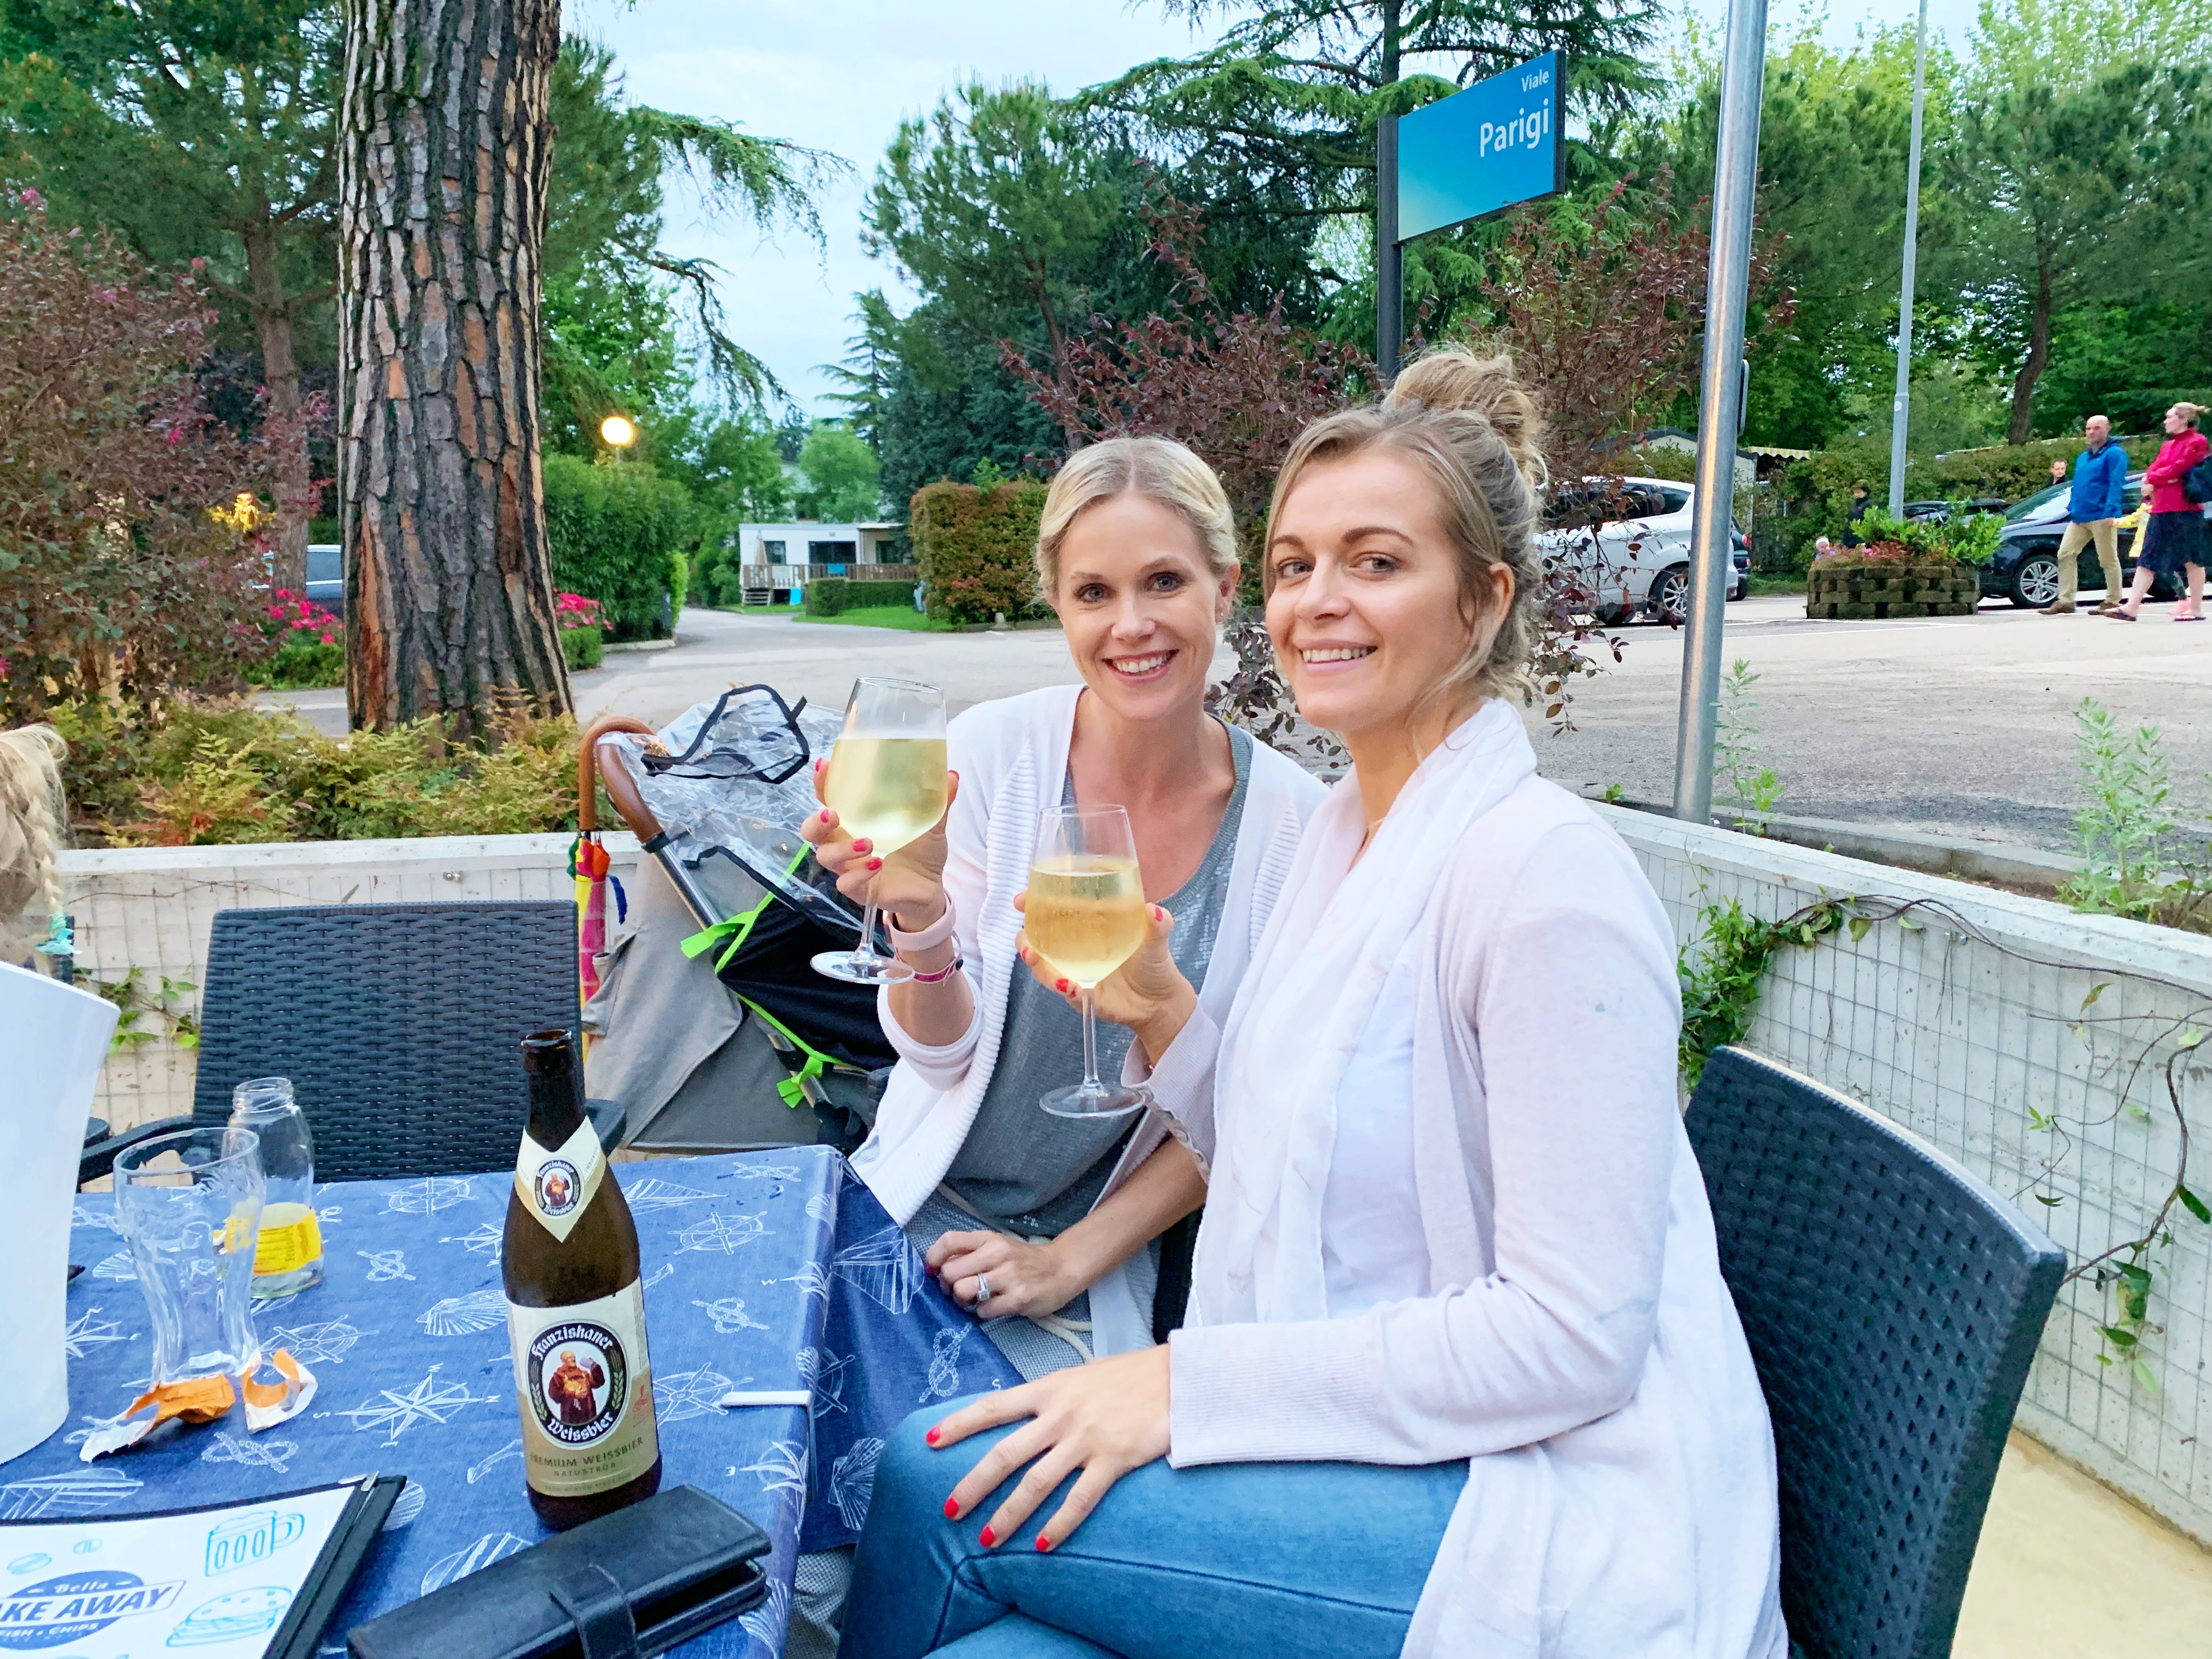 Two friends having a glass of wine in an outdoor restaurant